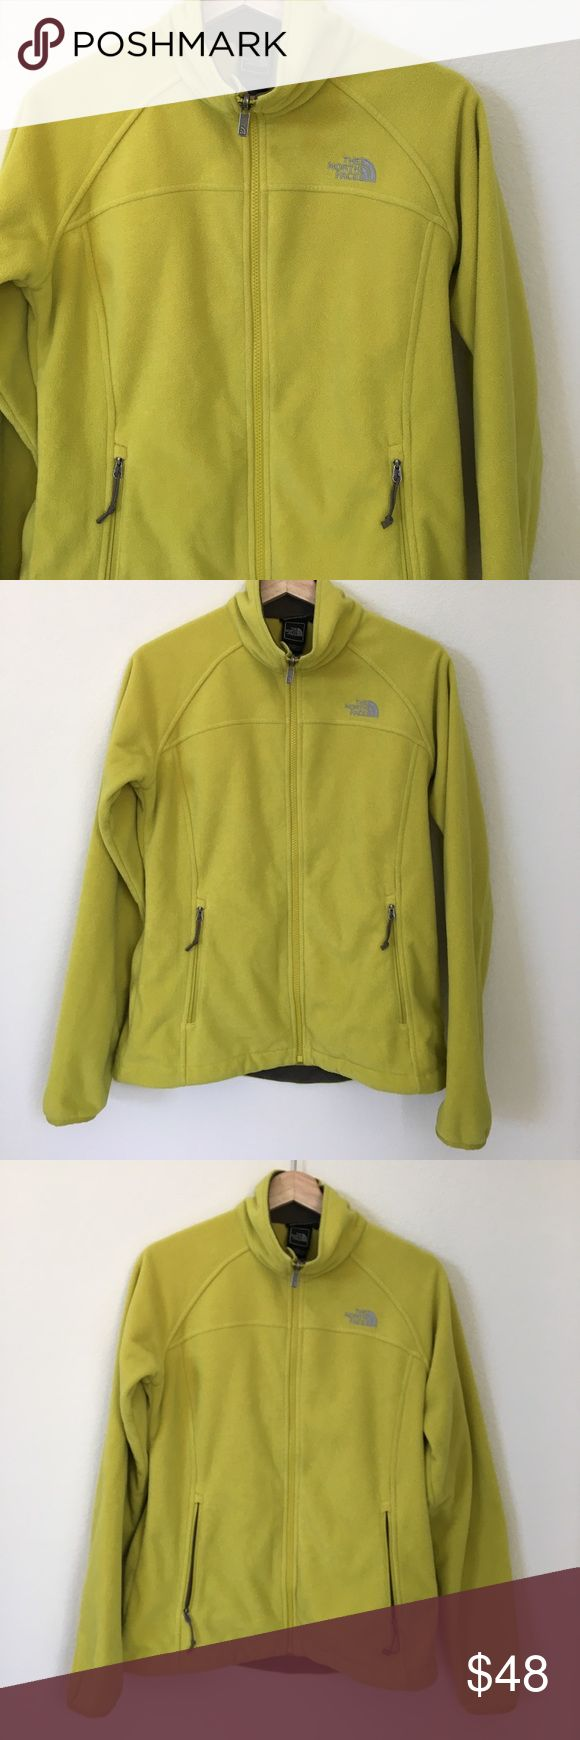 """{ The North Face } fleece jacket The North Face fleece jacket, polartec wind pro, zipper front pockets, inner slip pockets, zipper closure, previously worn with wash and wear to it including color isn't as vibrant and pure, in good condition otherwise. Cozy and comfy. Measures laying flat approx 20"""" pit to pit 24"""" mid shoulder down. The North Face Jackets & Coats"""